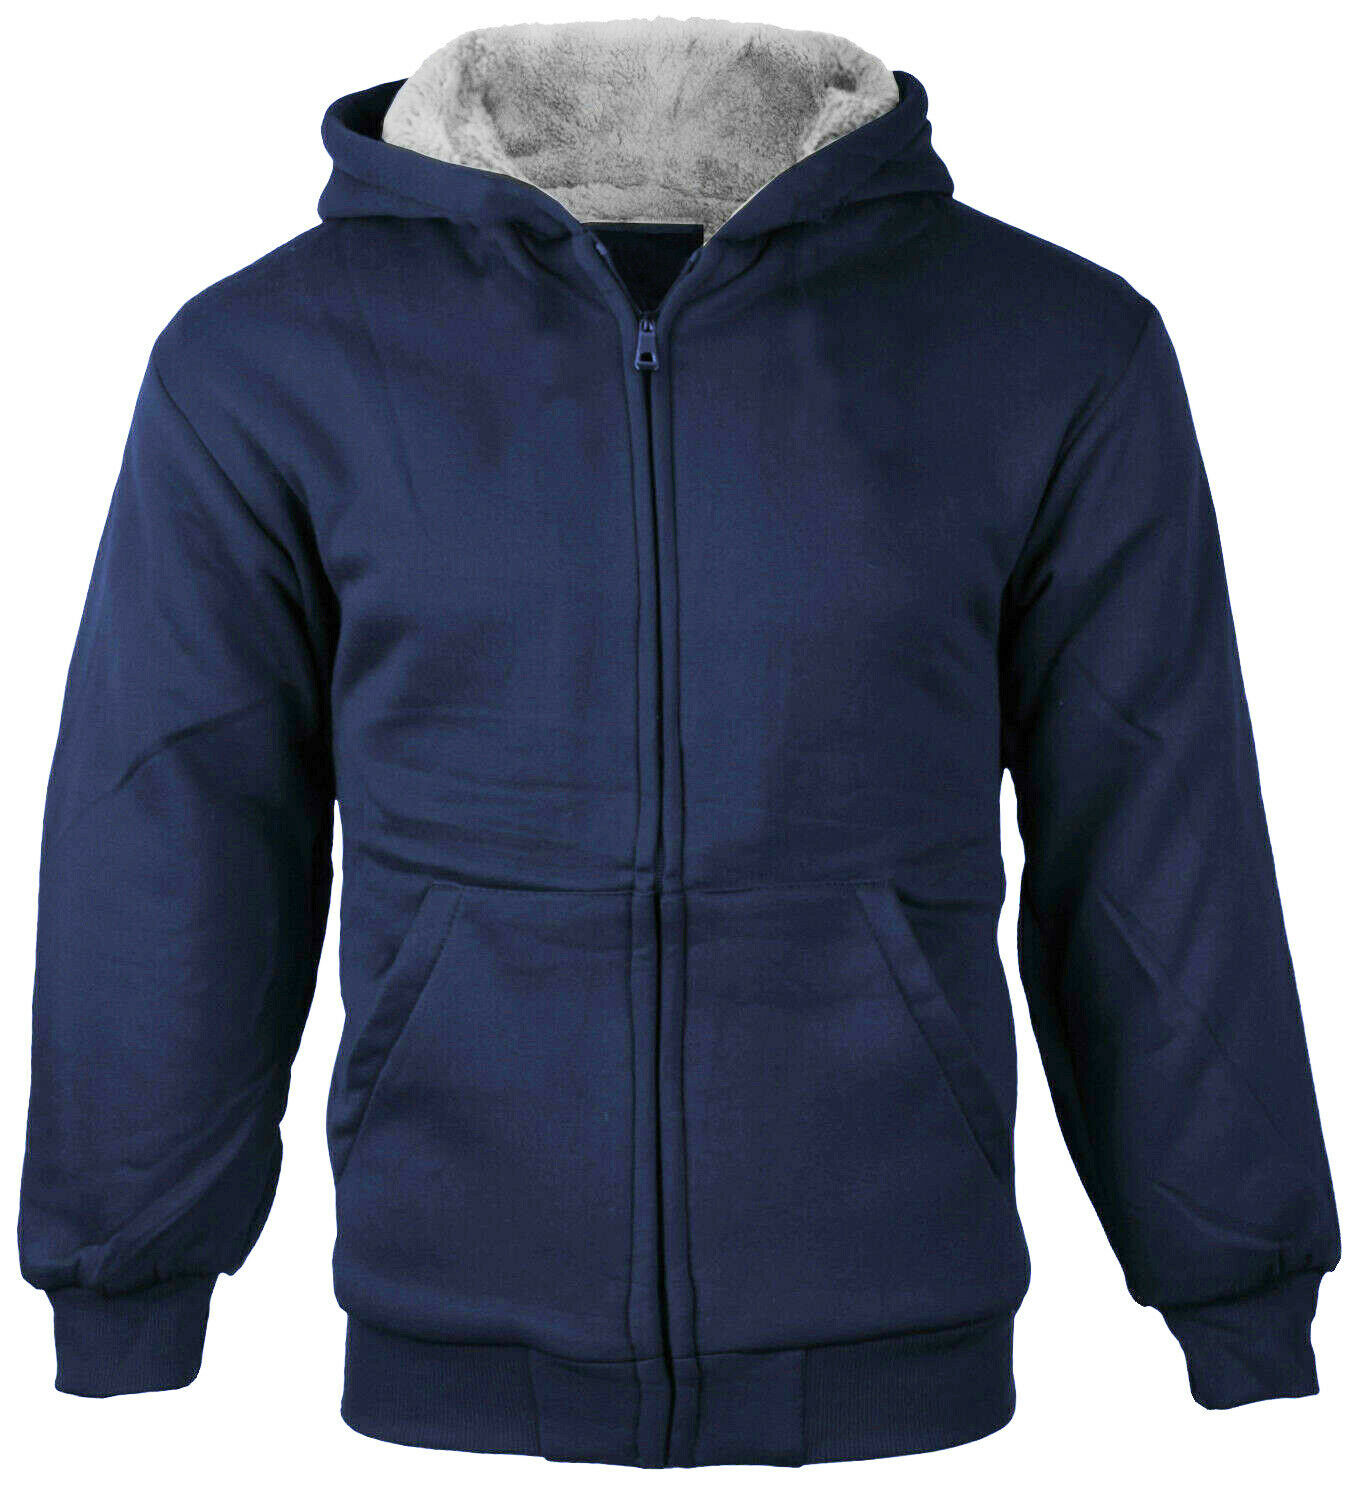 Boys Kids Toddler Athletic Sherpa Fleece Zip Hoodie Sweater Jacket w/ Defect  M